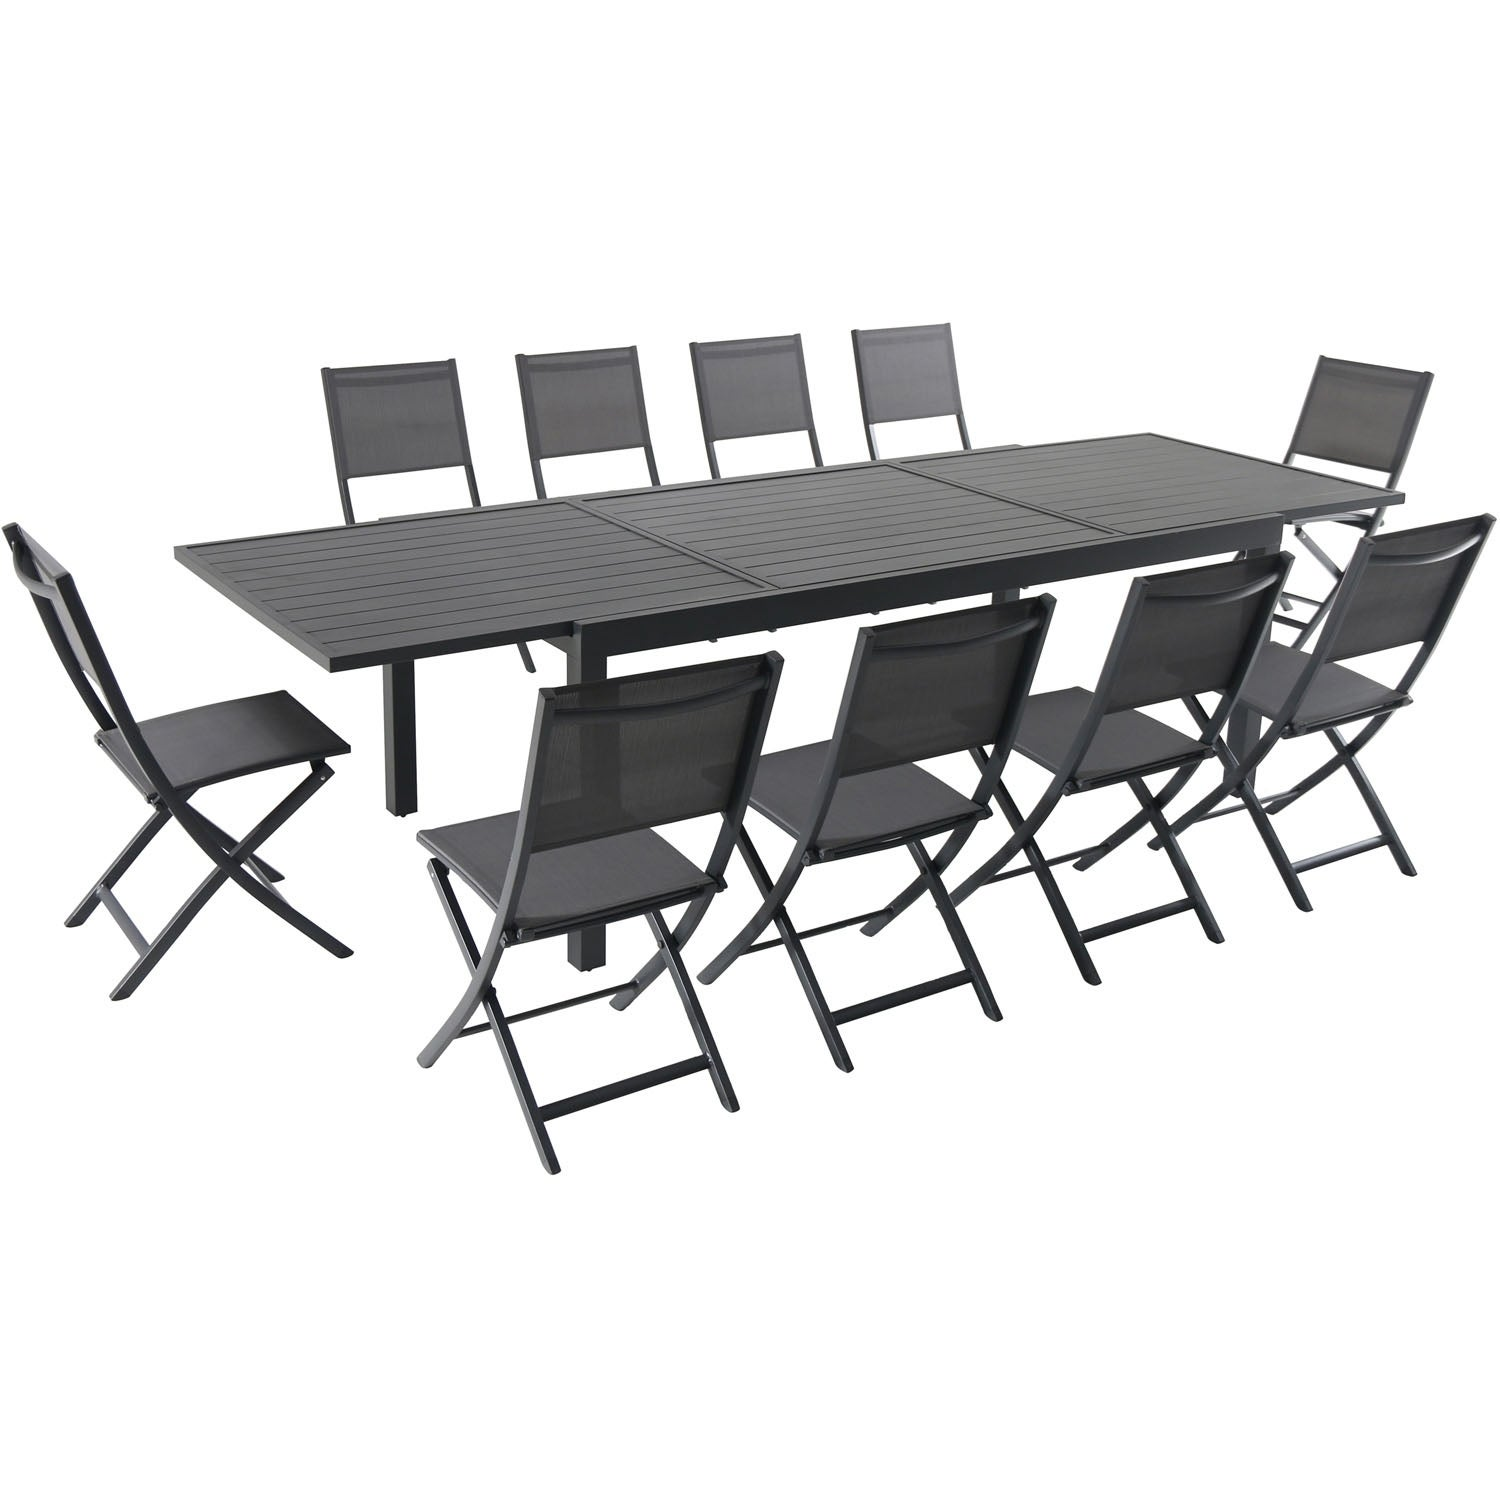 Cambridge Nova 11-Piece Dining Set with 10 Folding Sling Chairs and a 40 x 118 Expandable Dining Table